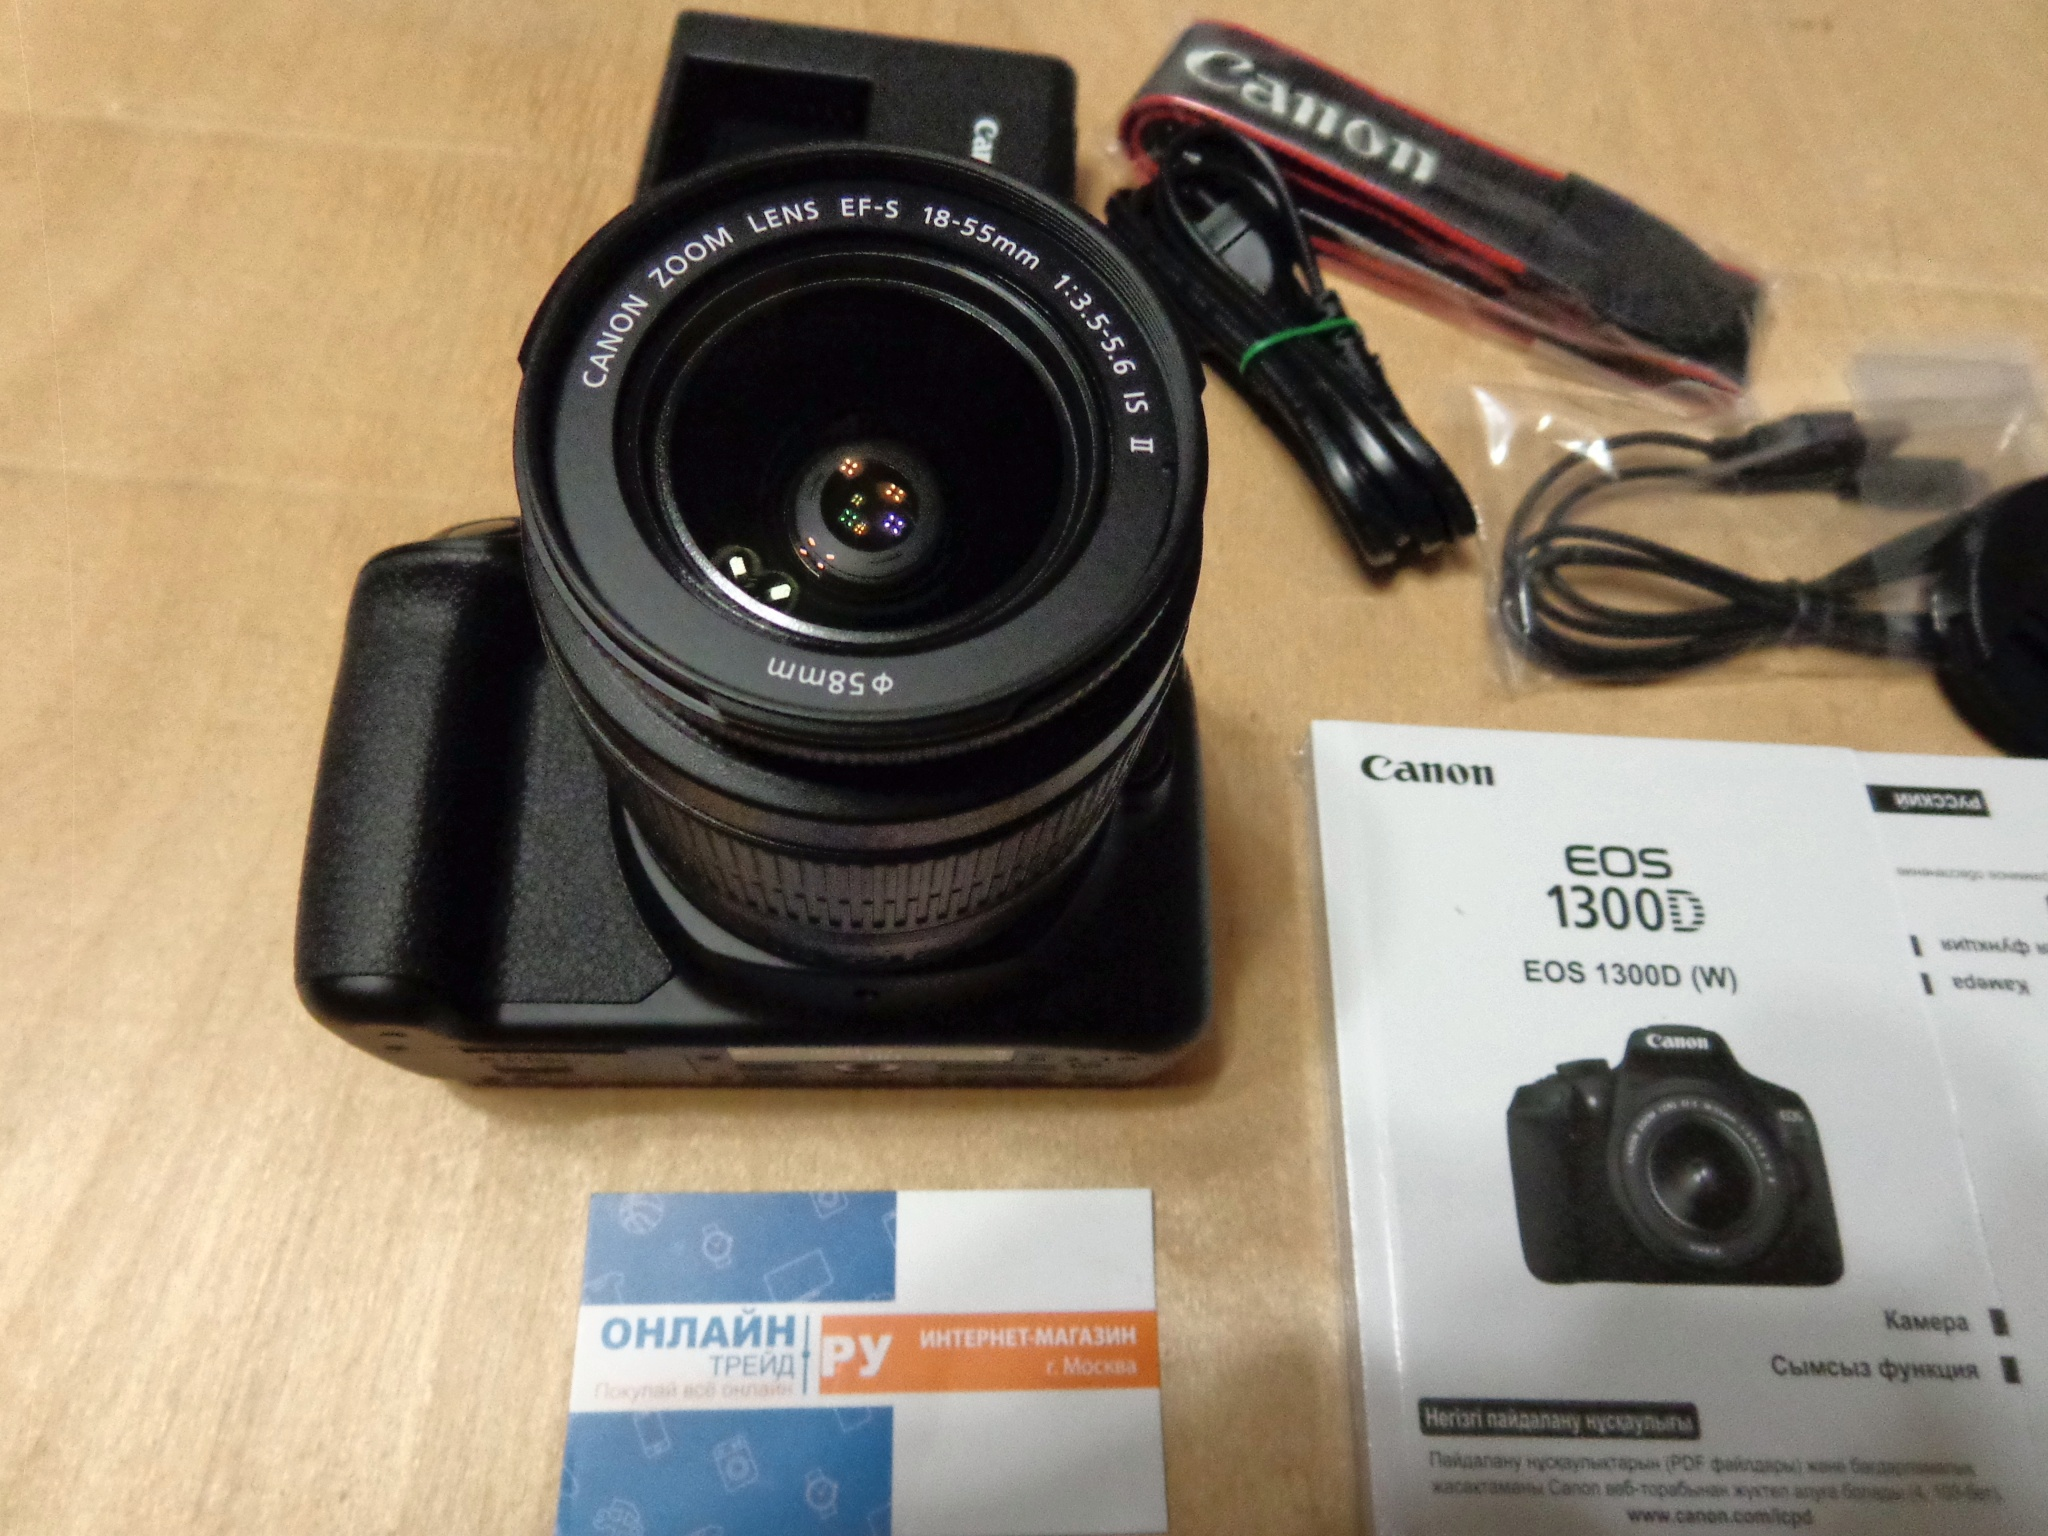 Canon Eos Digital 1300d With Lens 18 55mm Is Ii Kit 55